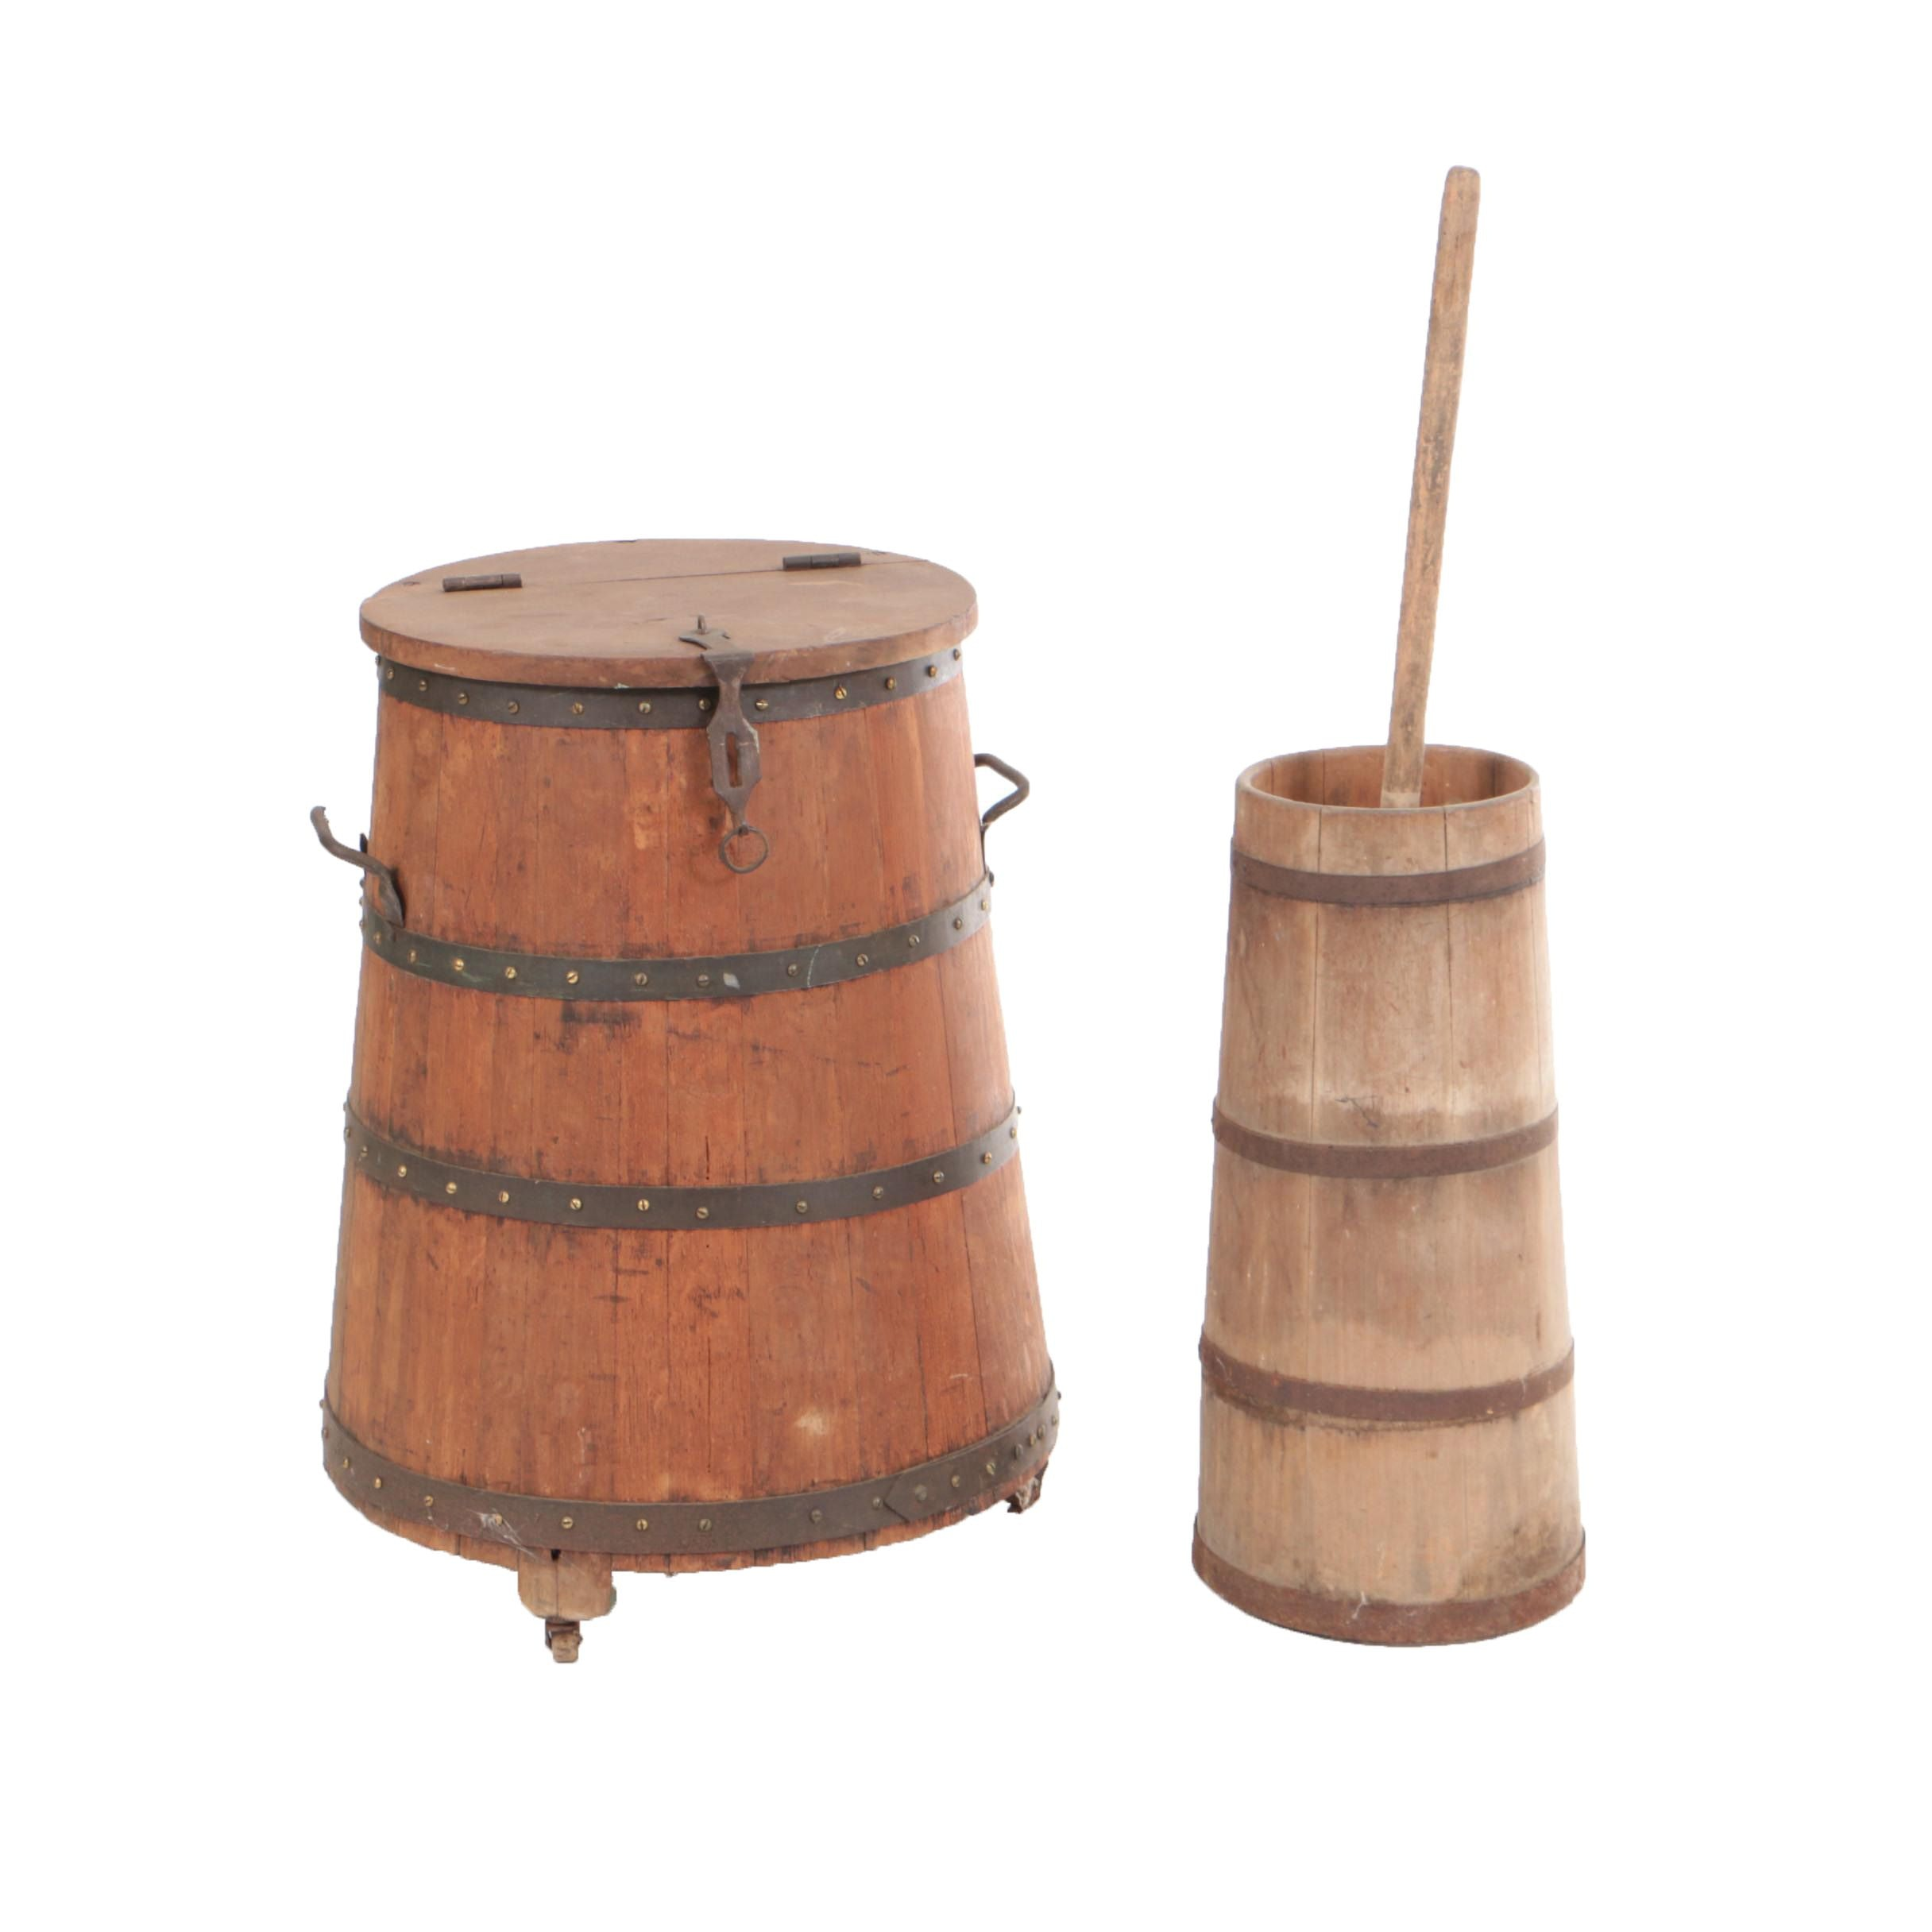 Antique Staved Butter Churn and Hinged-Lid Barrel